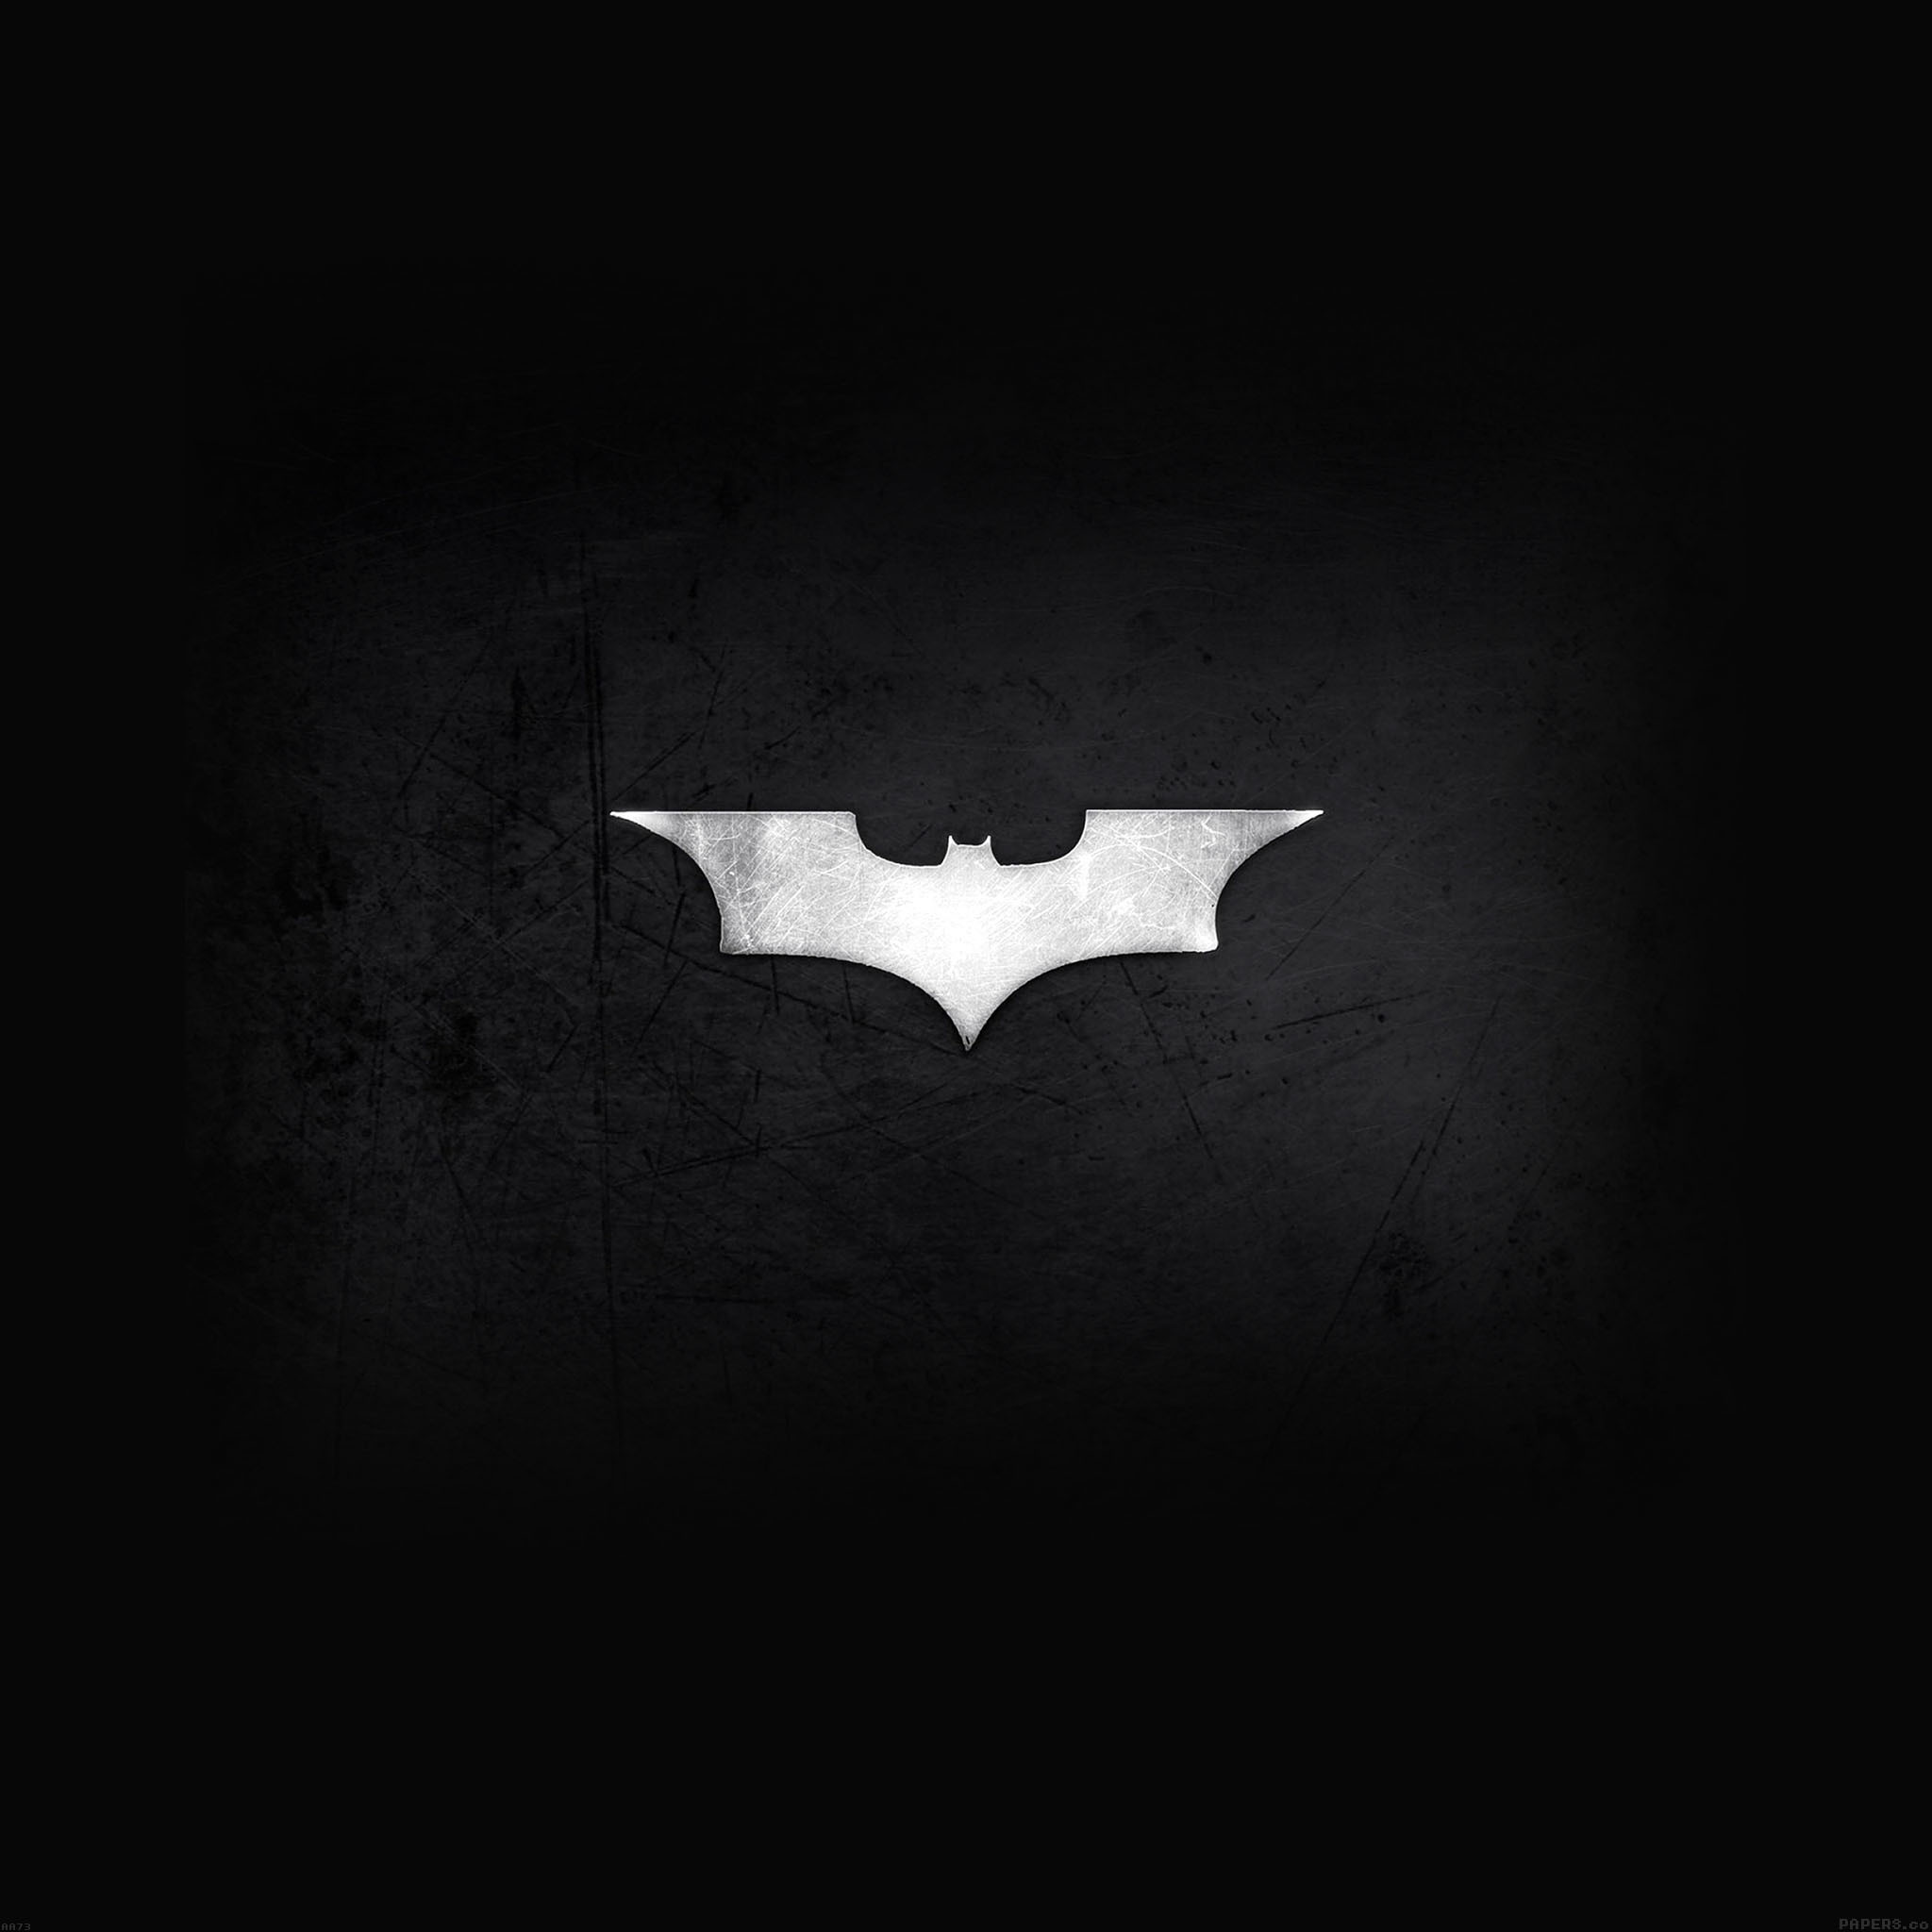 2048x2048 Weekend Wallpapers: Batman Protects Gotham City on Your iPad